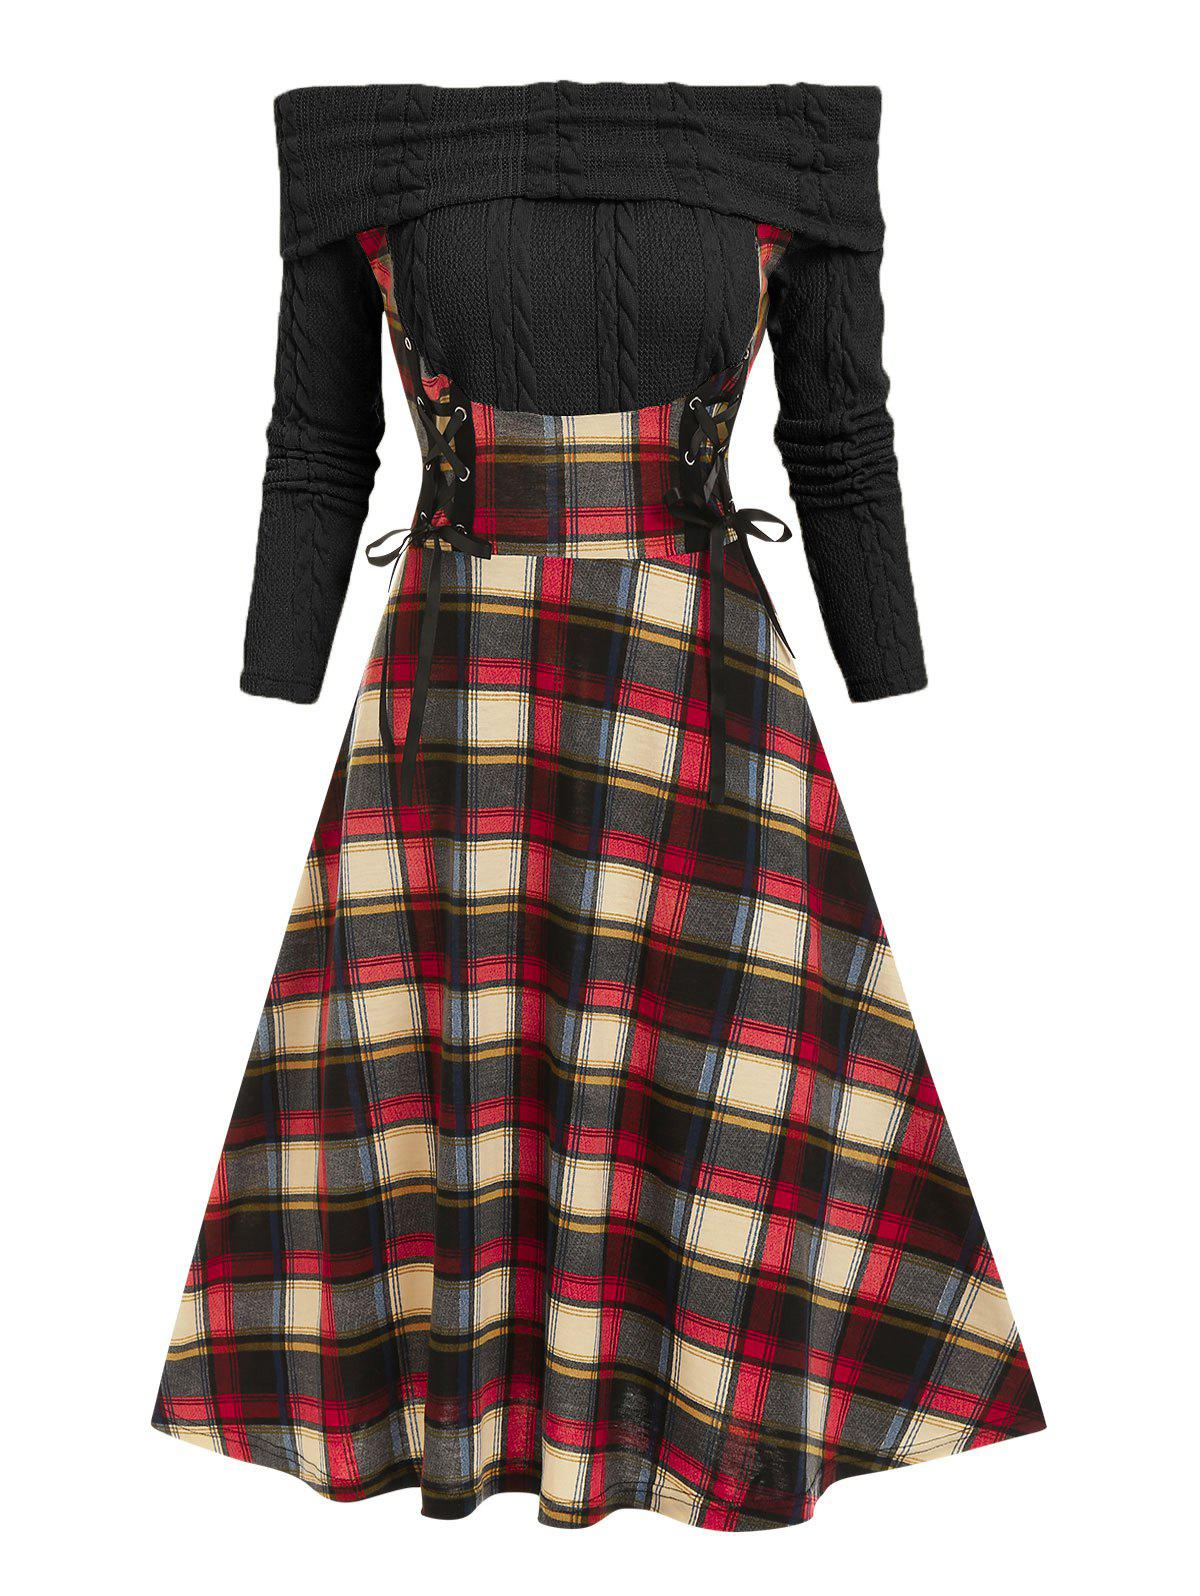 Online Off The Shoulder Lace Up Plaid  2 in 1 Dress